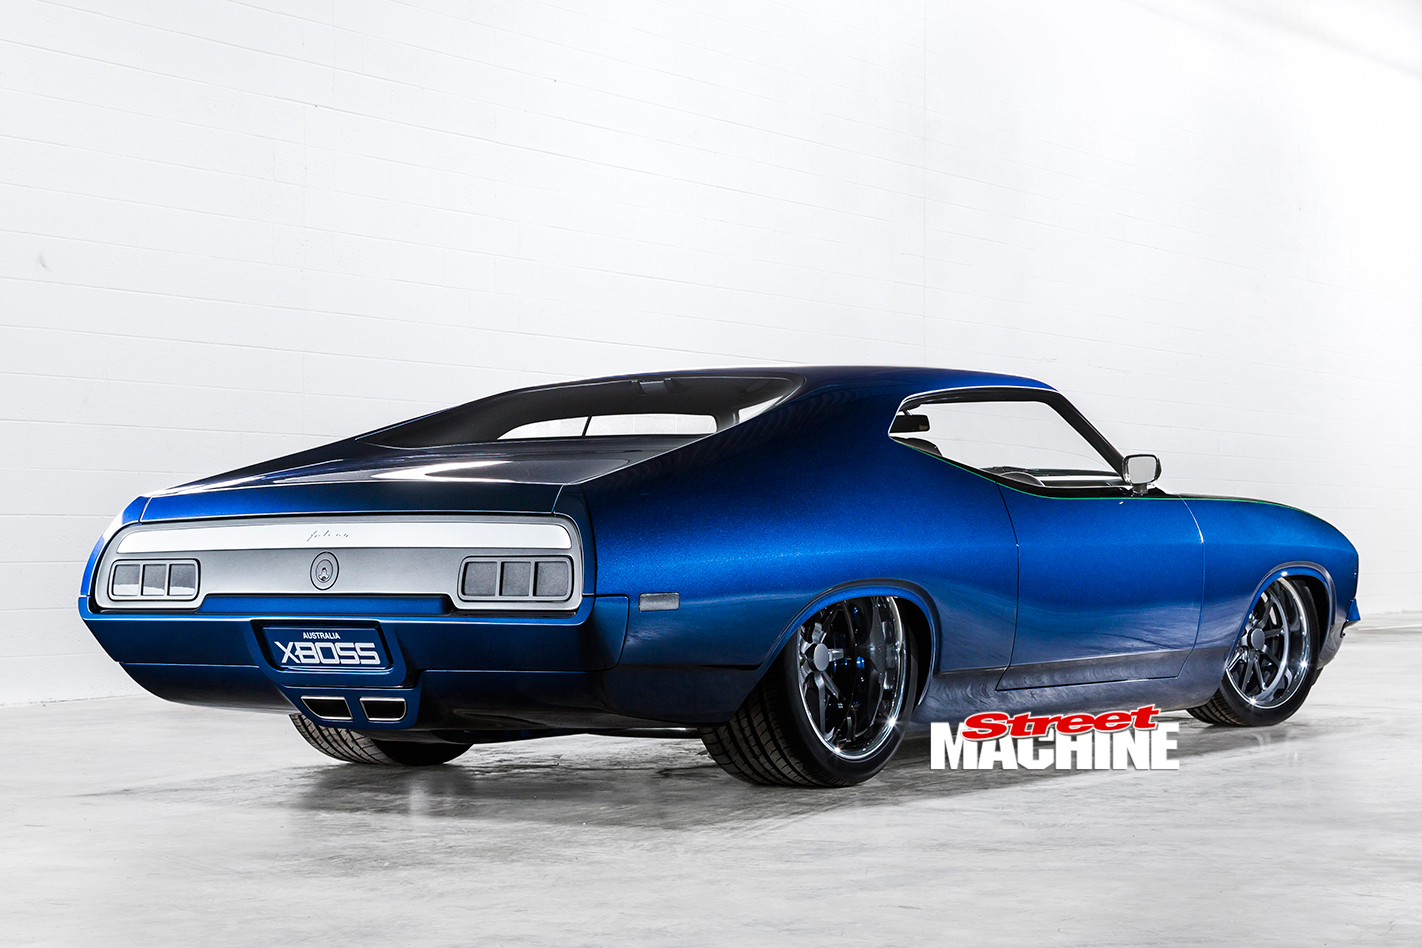 CHRIS BITMEAD'S STUNNING 1976 FORD FALCON XB COUPE - XBOSS